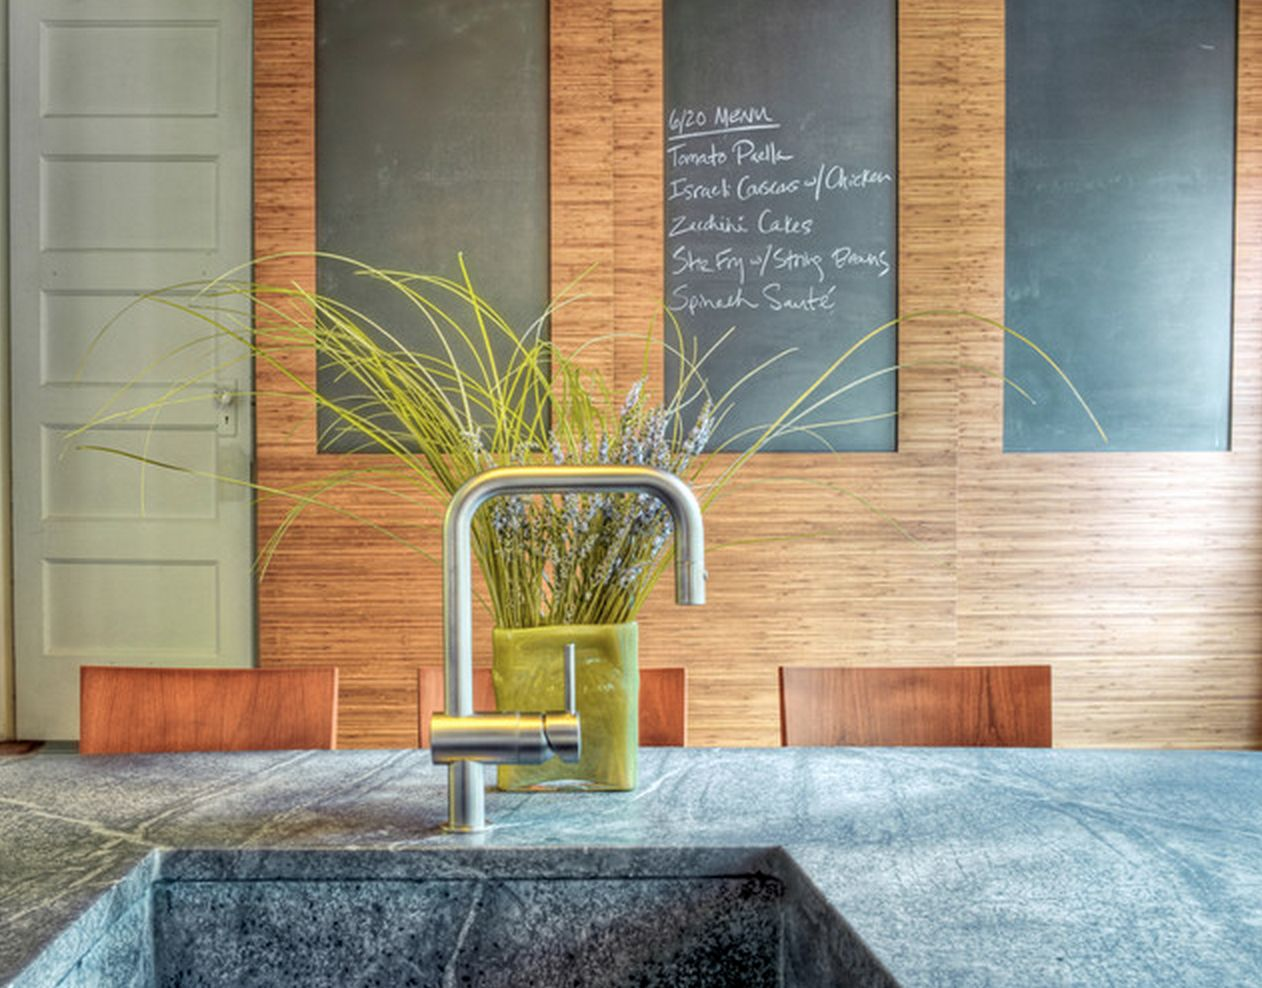 soapstone countertops kitchen countertop materials Home Decorating Trends Homedit